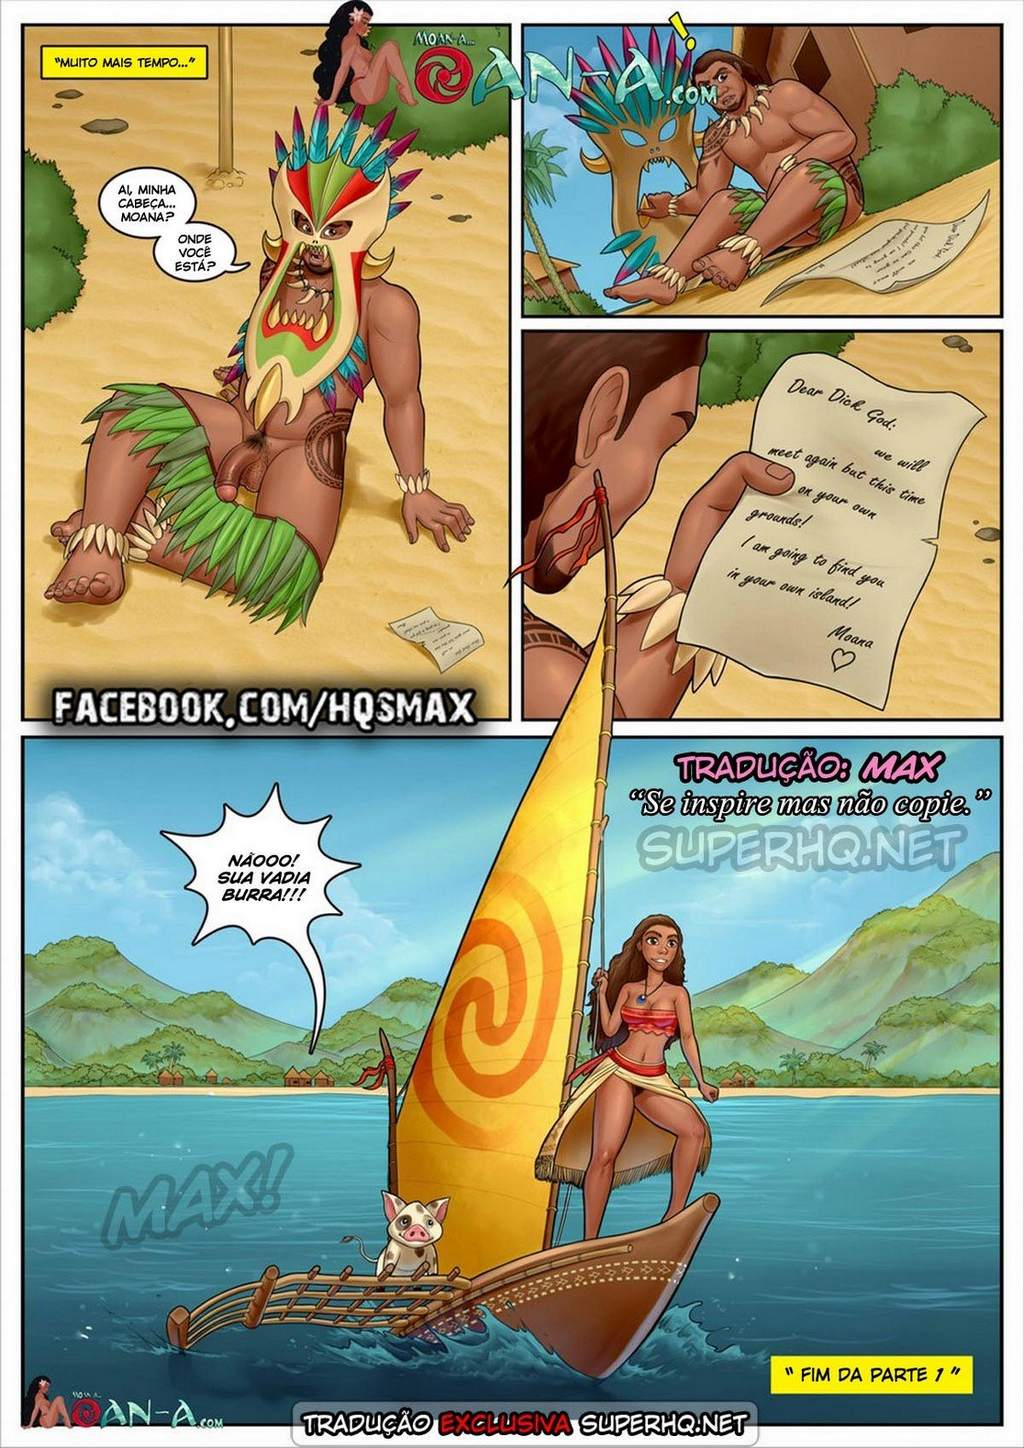 Moana – A ilha do gemido part 1 Disney Hentai Pag. 13 - hentai, comics-hq